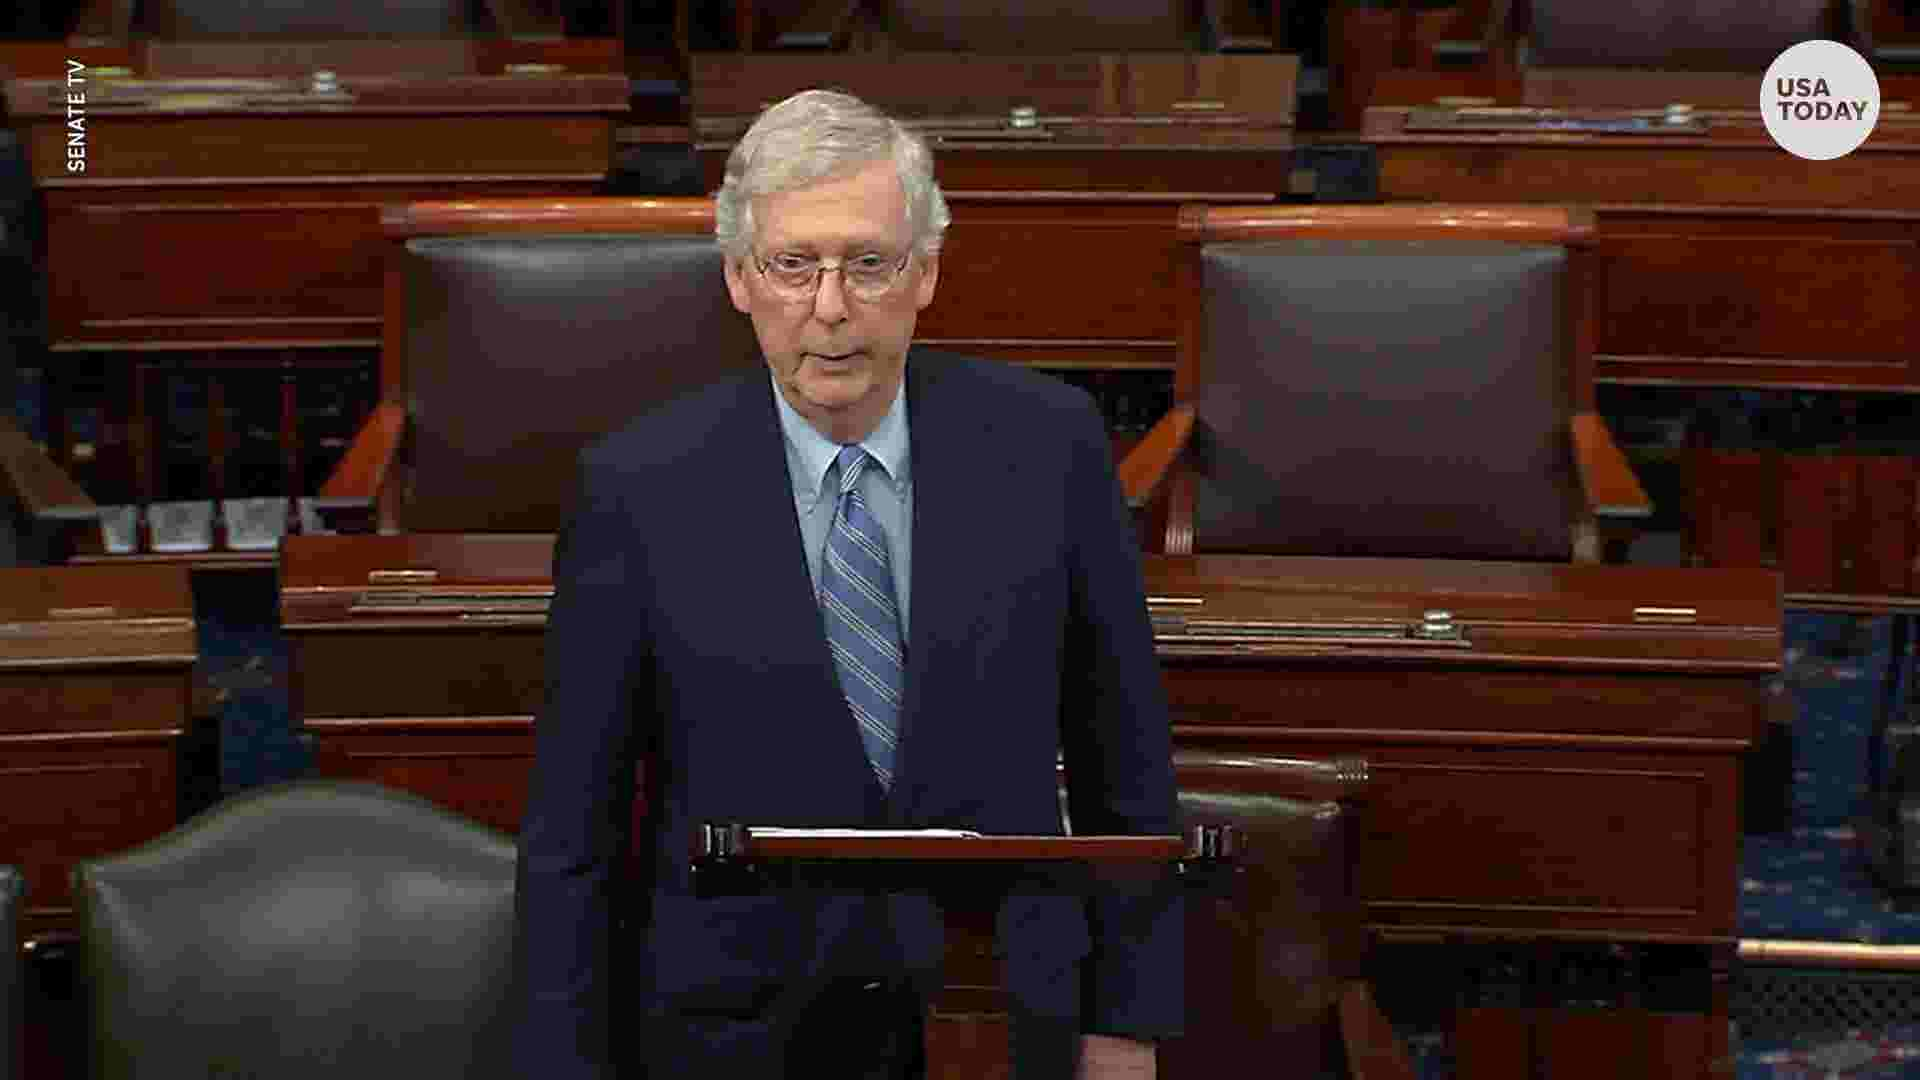 Why is McConnell so upset about being called Moscow Mitch? Maybe it hits too close to home